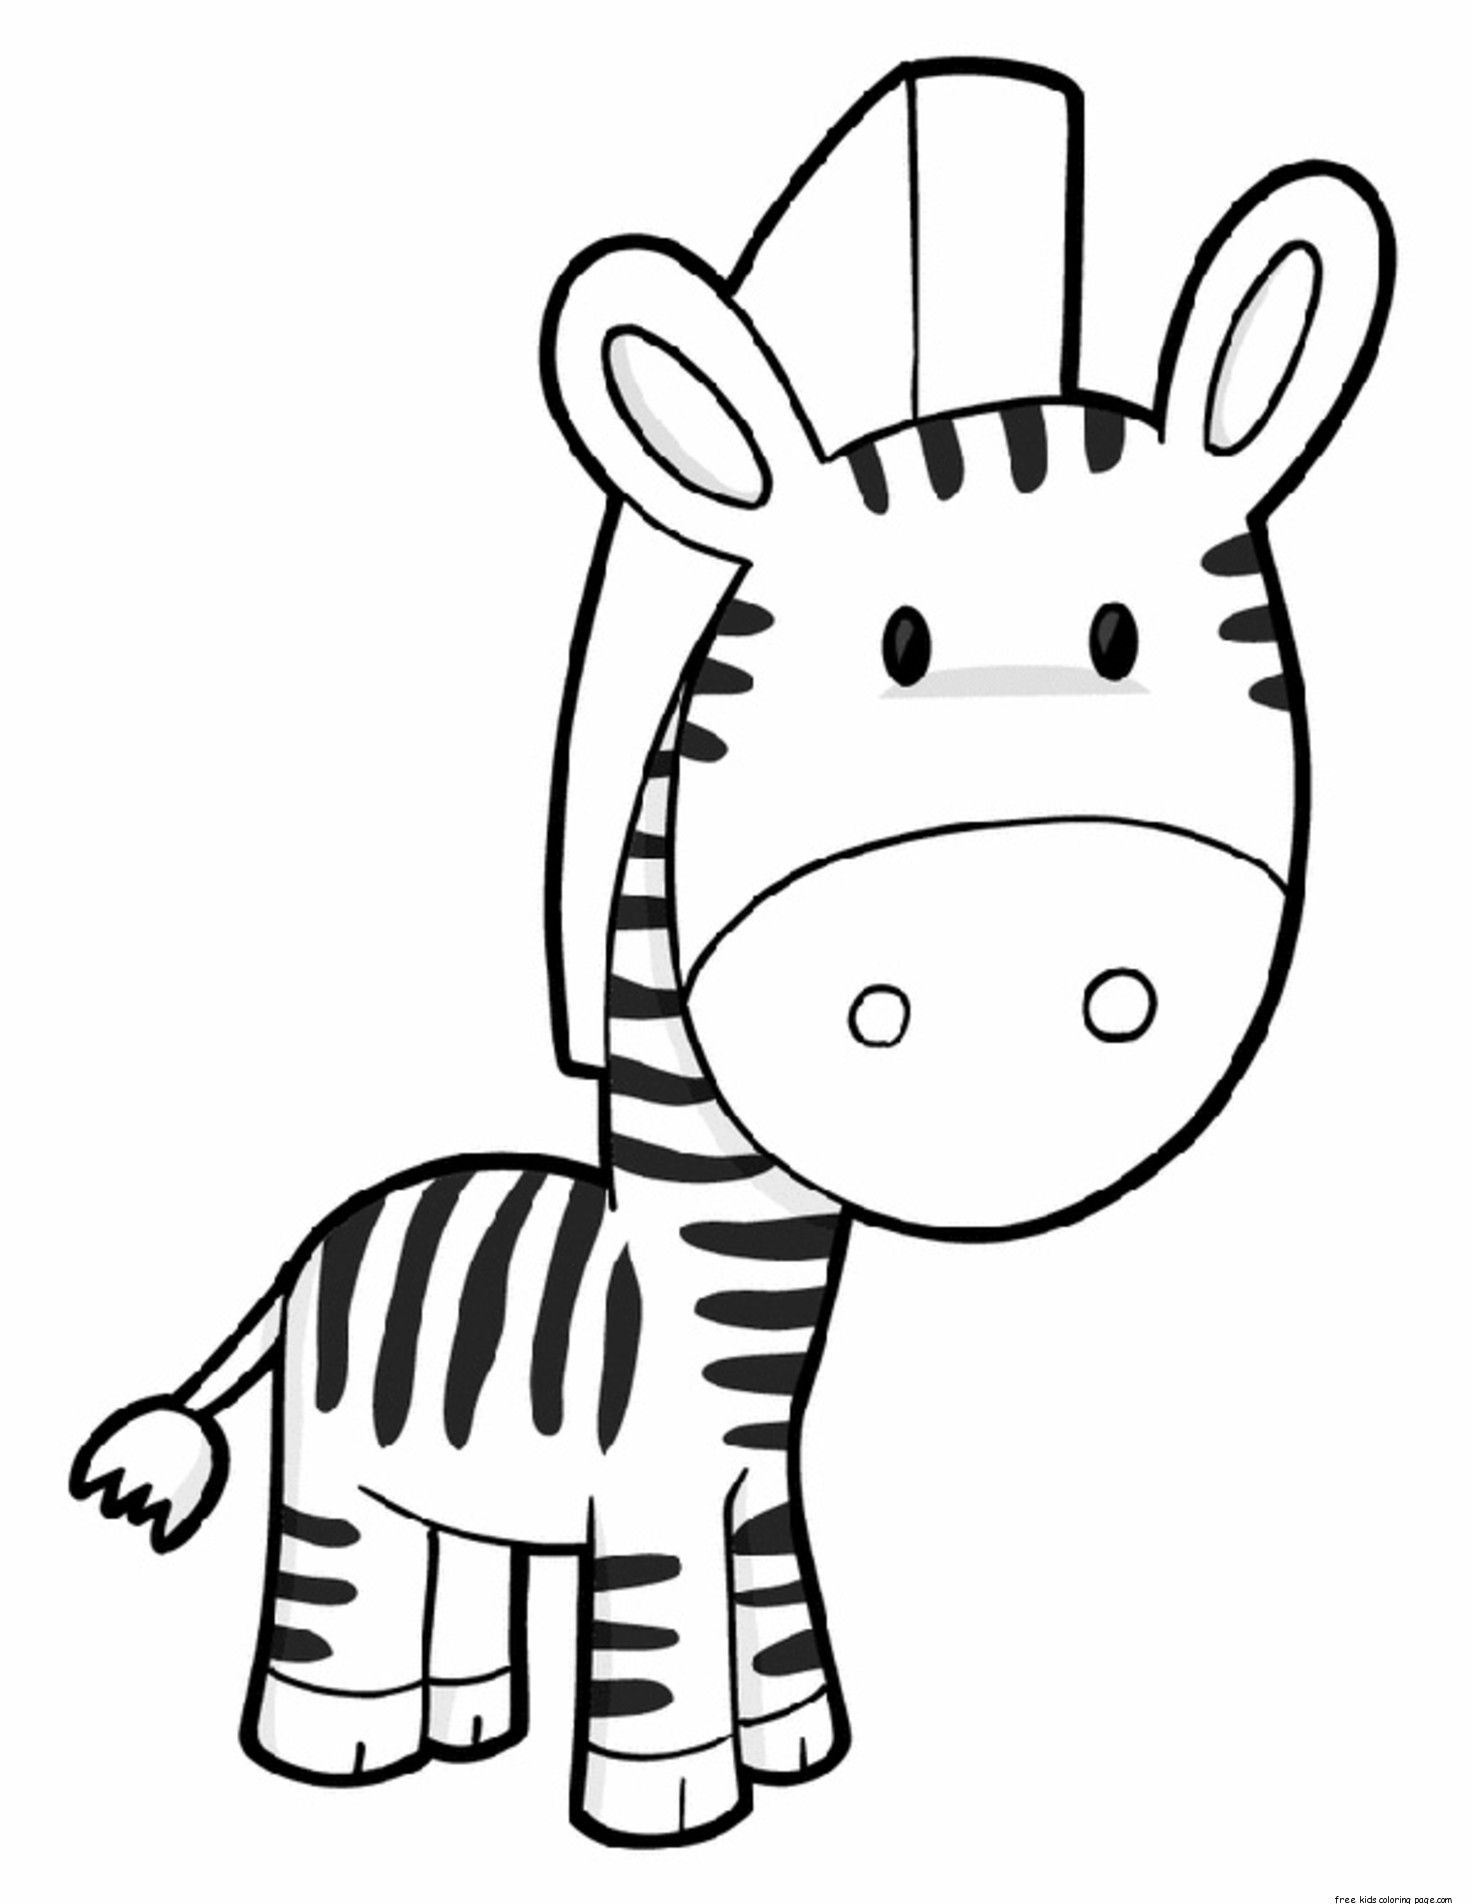 Coloring pages zebra -  1472 X 1904